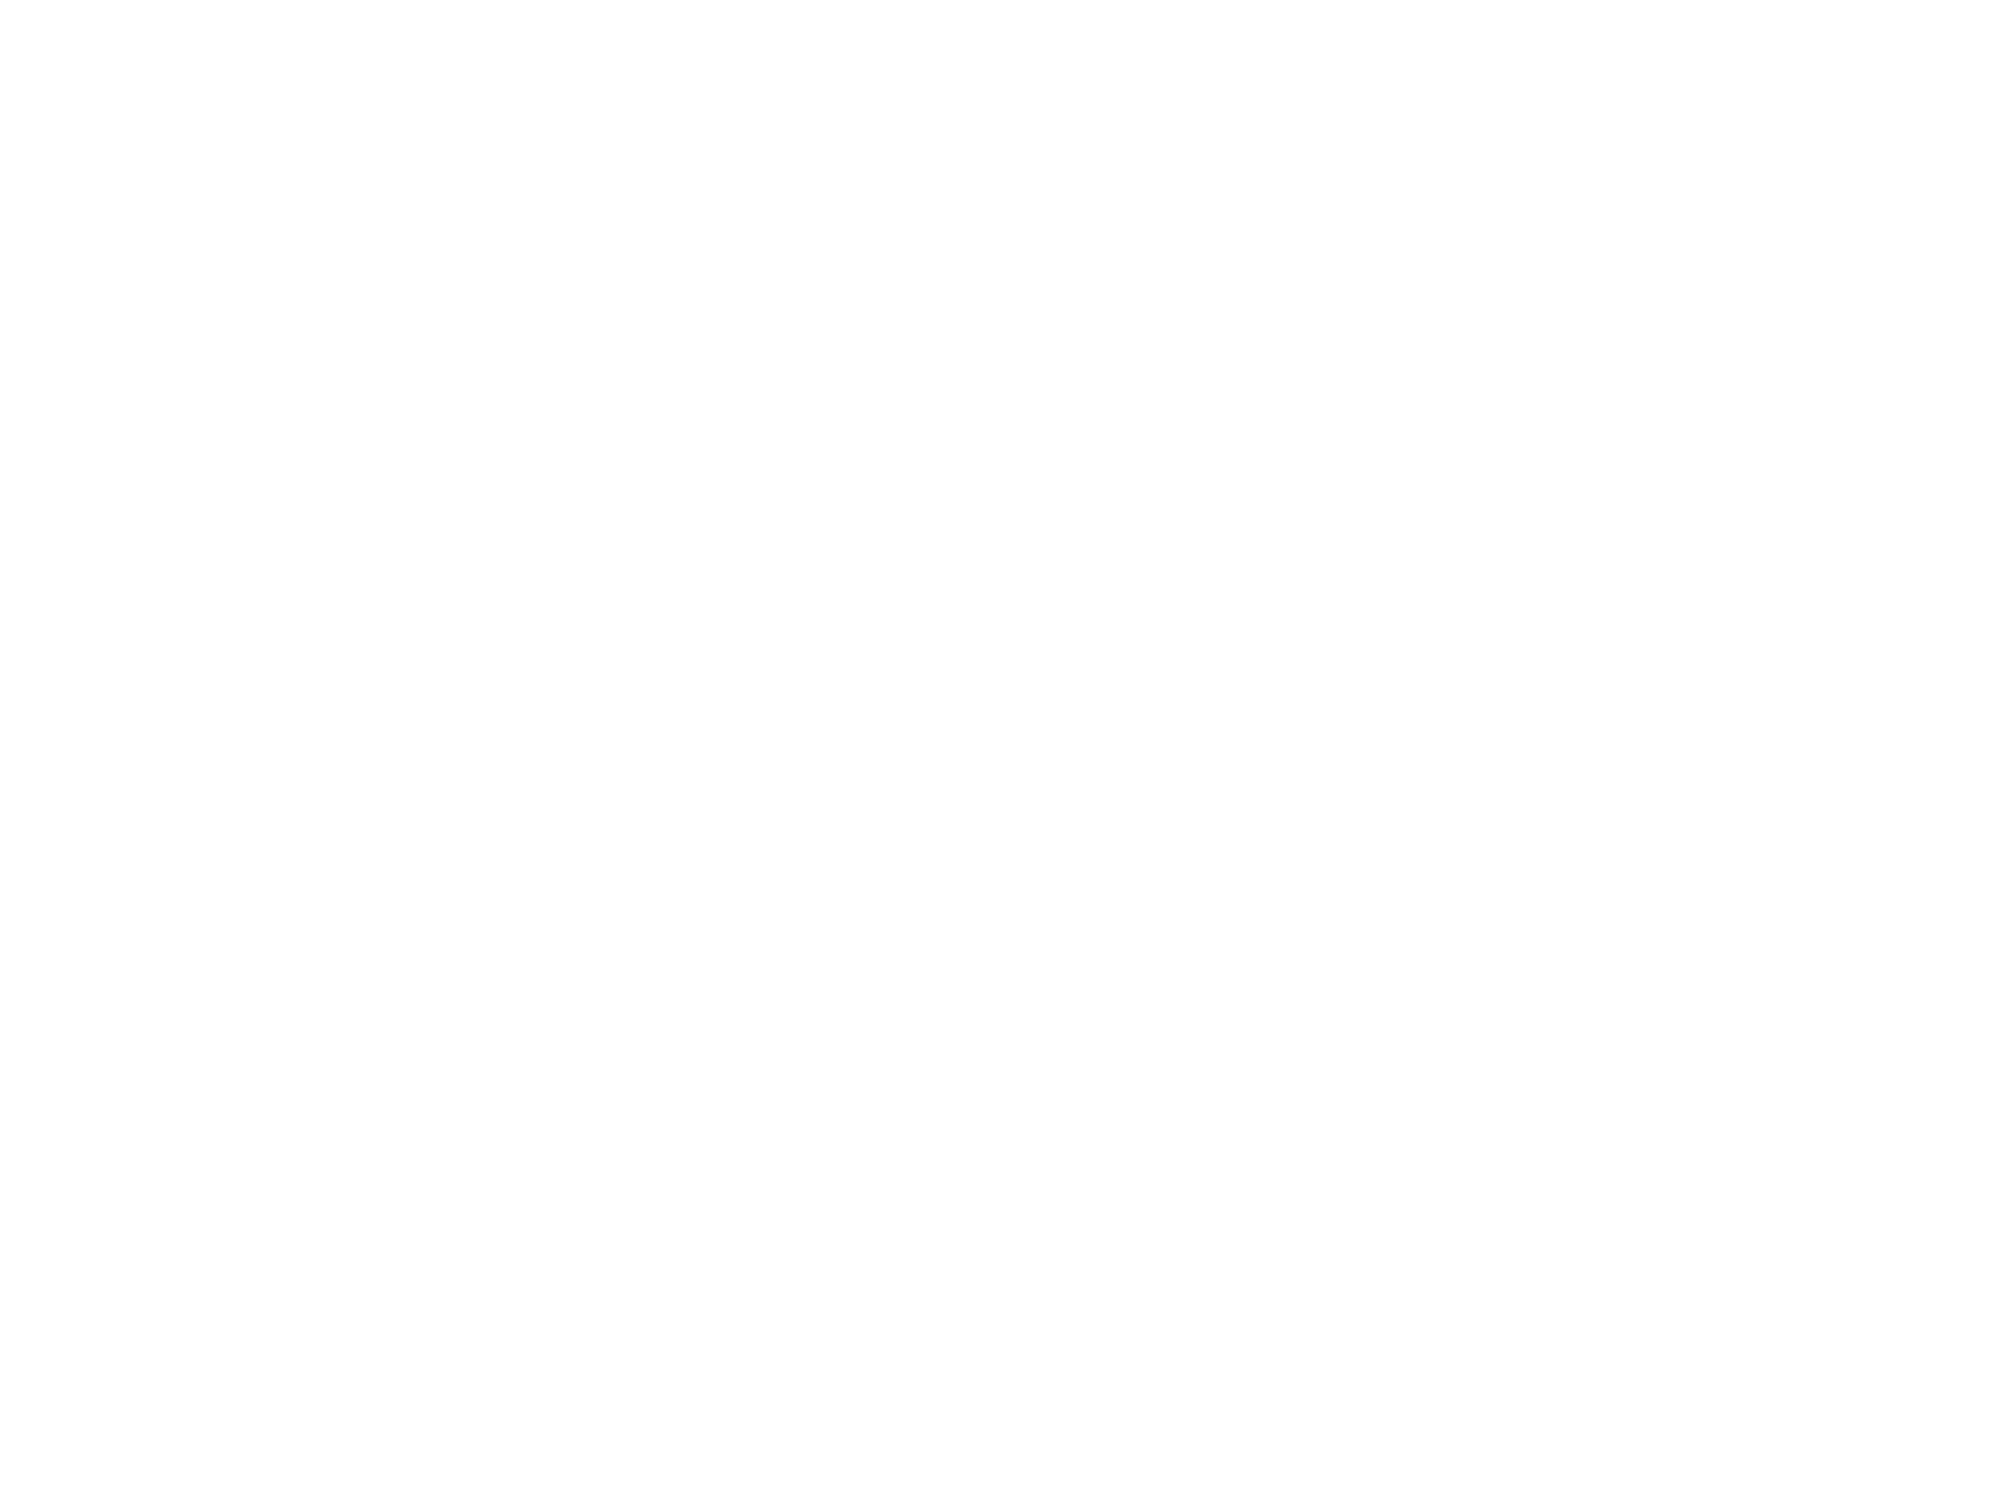 Hours and Miles